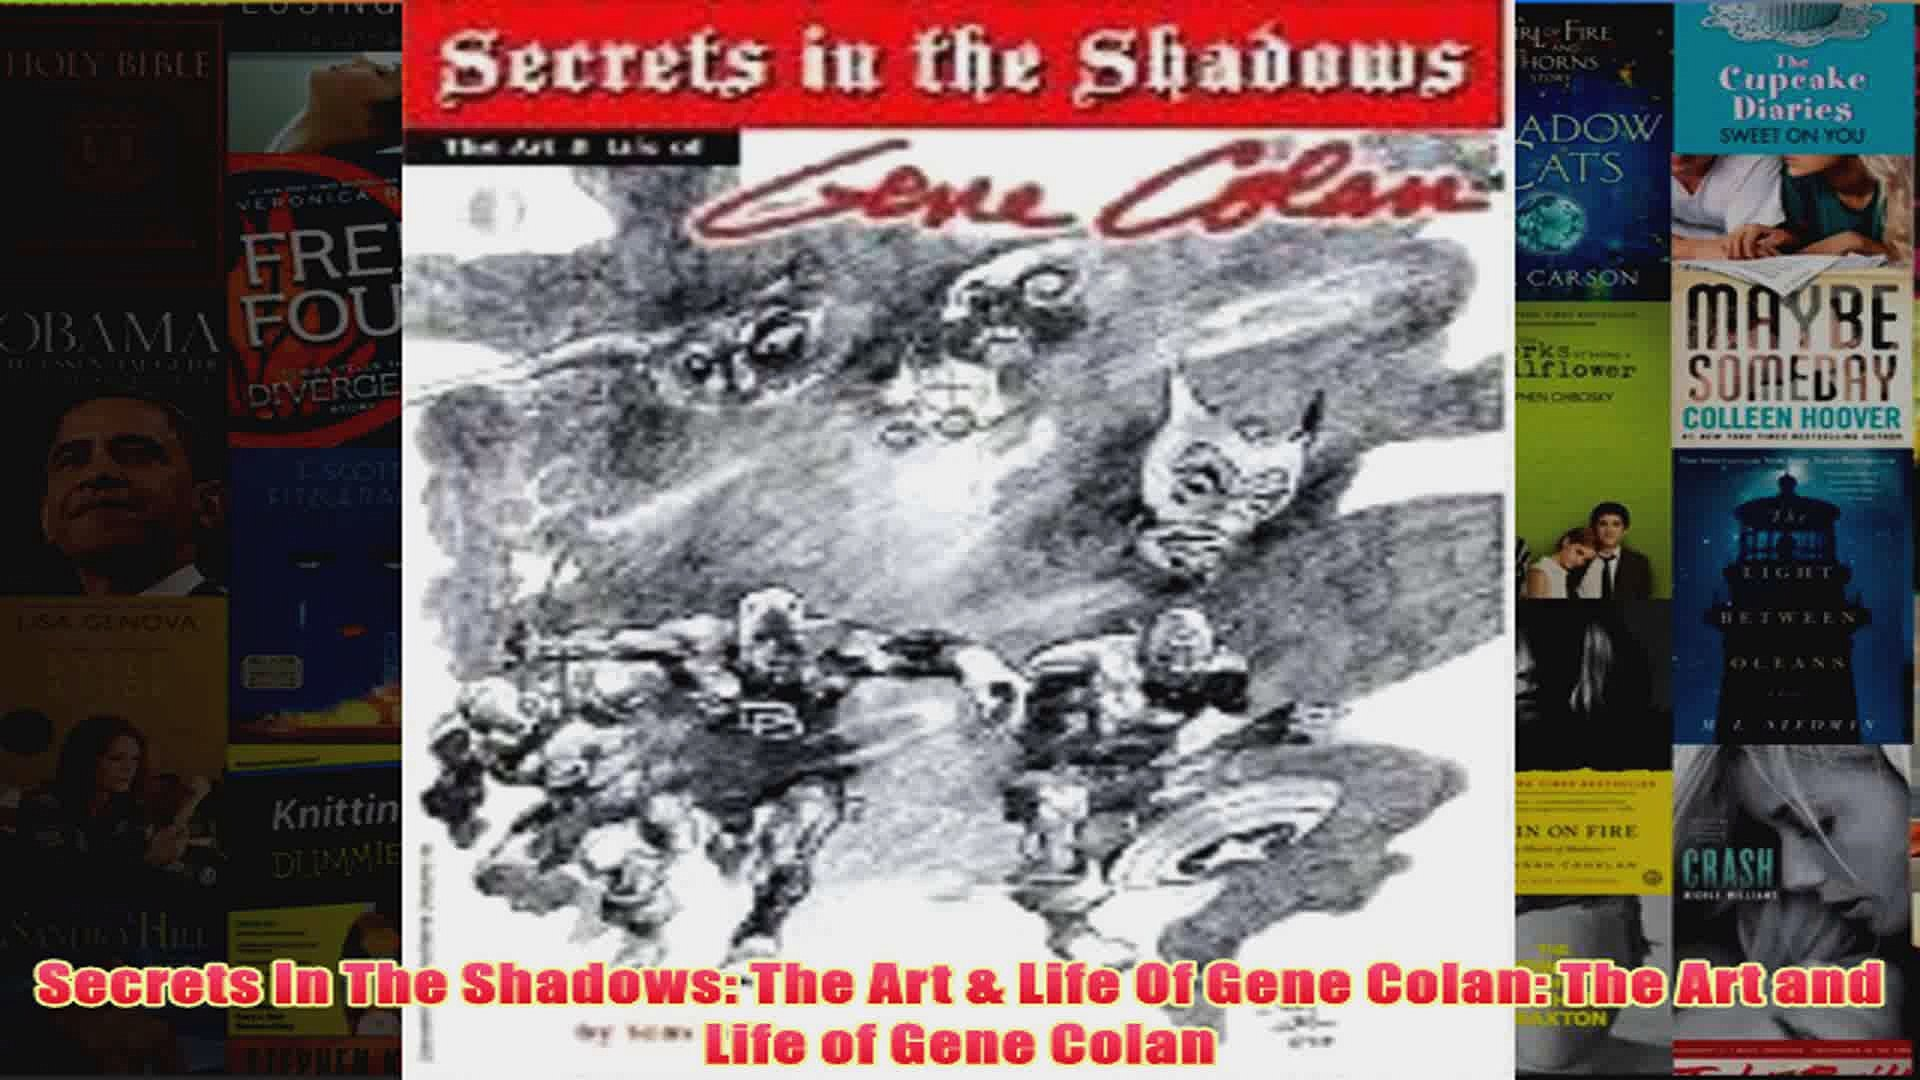 Secrets In The Shadows The Art  Life Of Gene Colan The Art and Life of Gene Colan